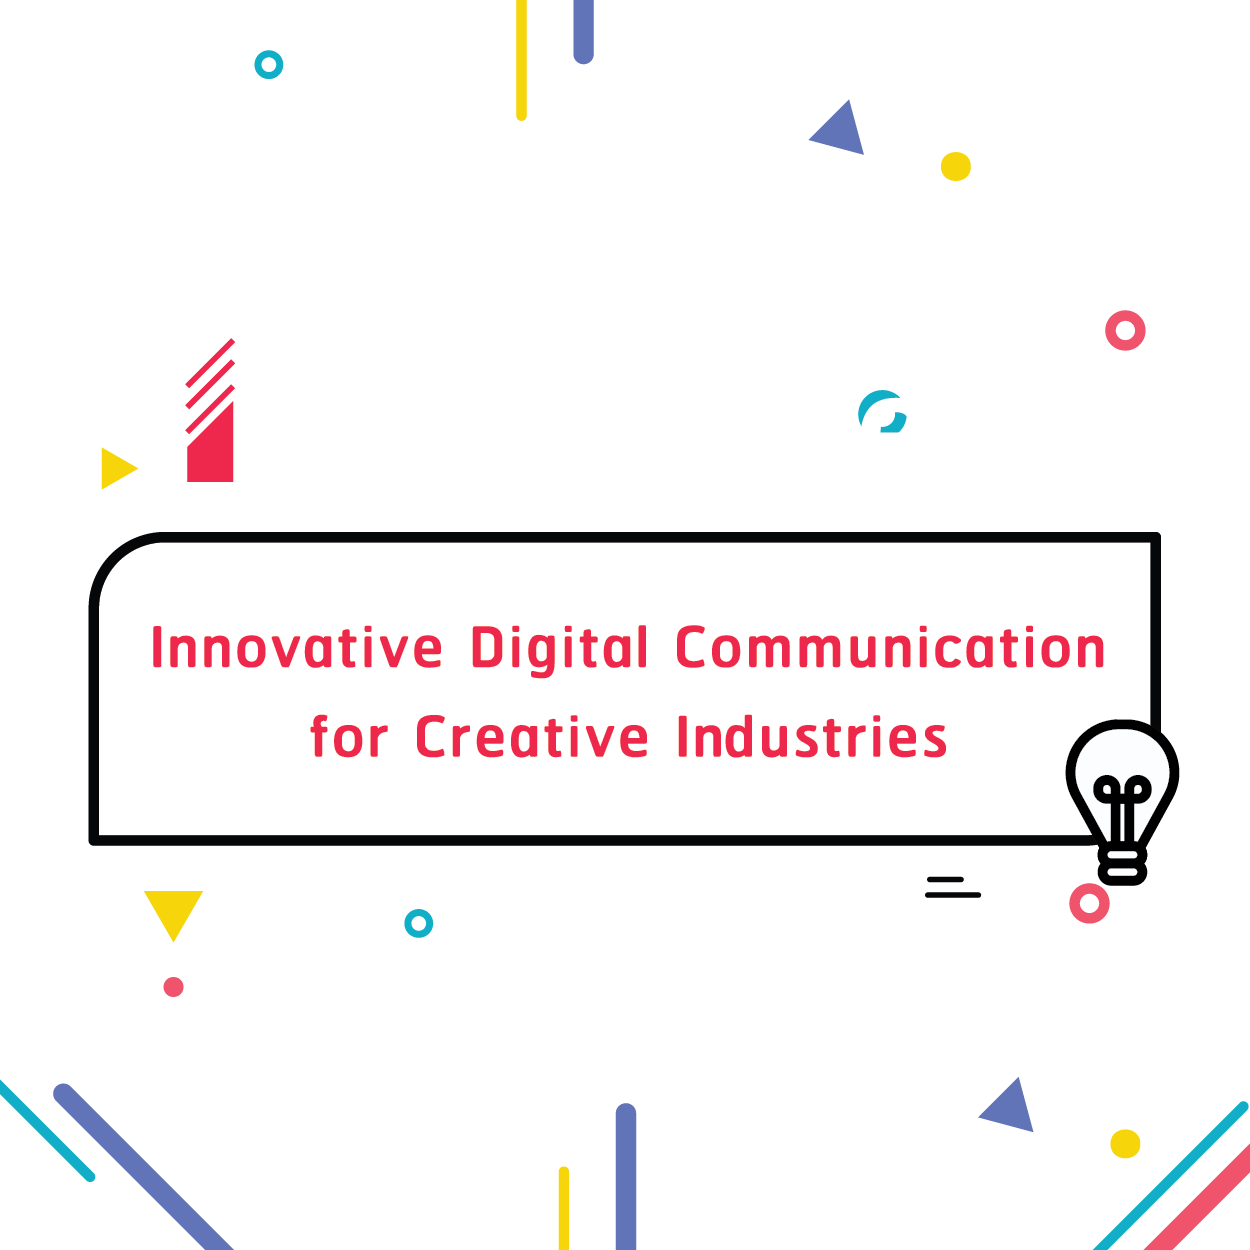 Innovative Digital Communication for Creative Industries